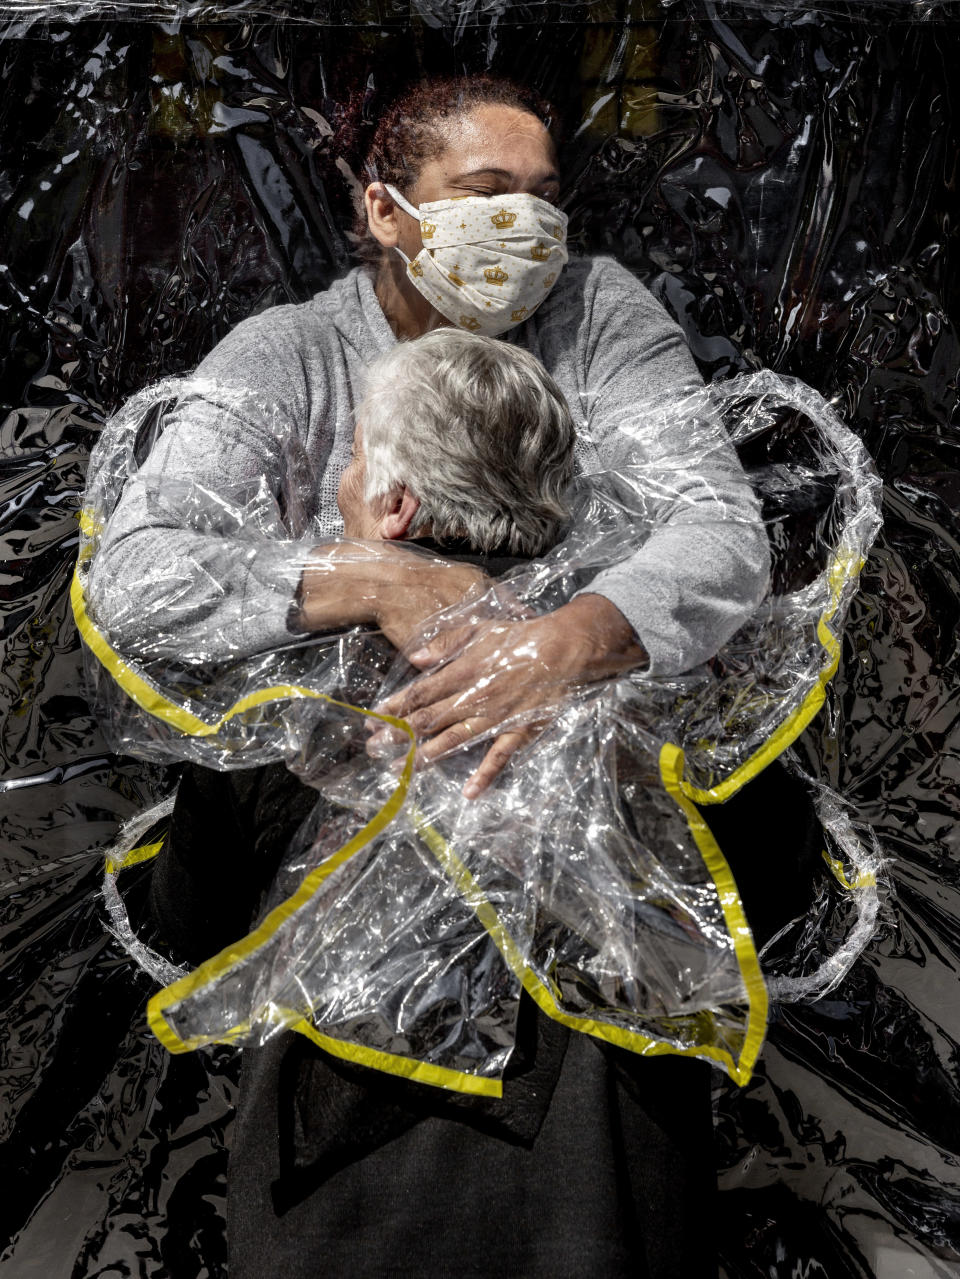 In this image released by World Press Photo, Thursday April 15, 2021, by Mads Nissen, Politiken, Panos Pictures, which won the World Press Photo of the Year award, and the first prize in the General News Singles category, titled The First Embrace, shows Rosa Luzia Lunardi (85) embraced by nurse Adriana Silva da Costa Souza, at Viva Bem care home, Sao Paulo, Brazil, on August 5, 2020. (Mads Nissen, Politiken, Panos Pictures, World Press Photo via AP)